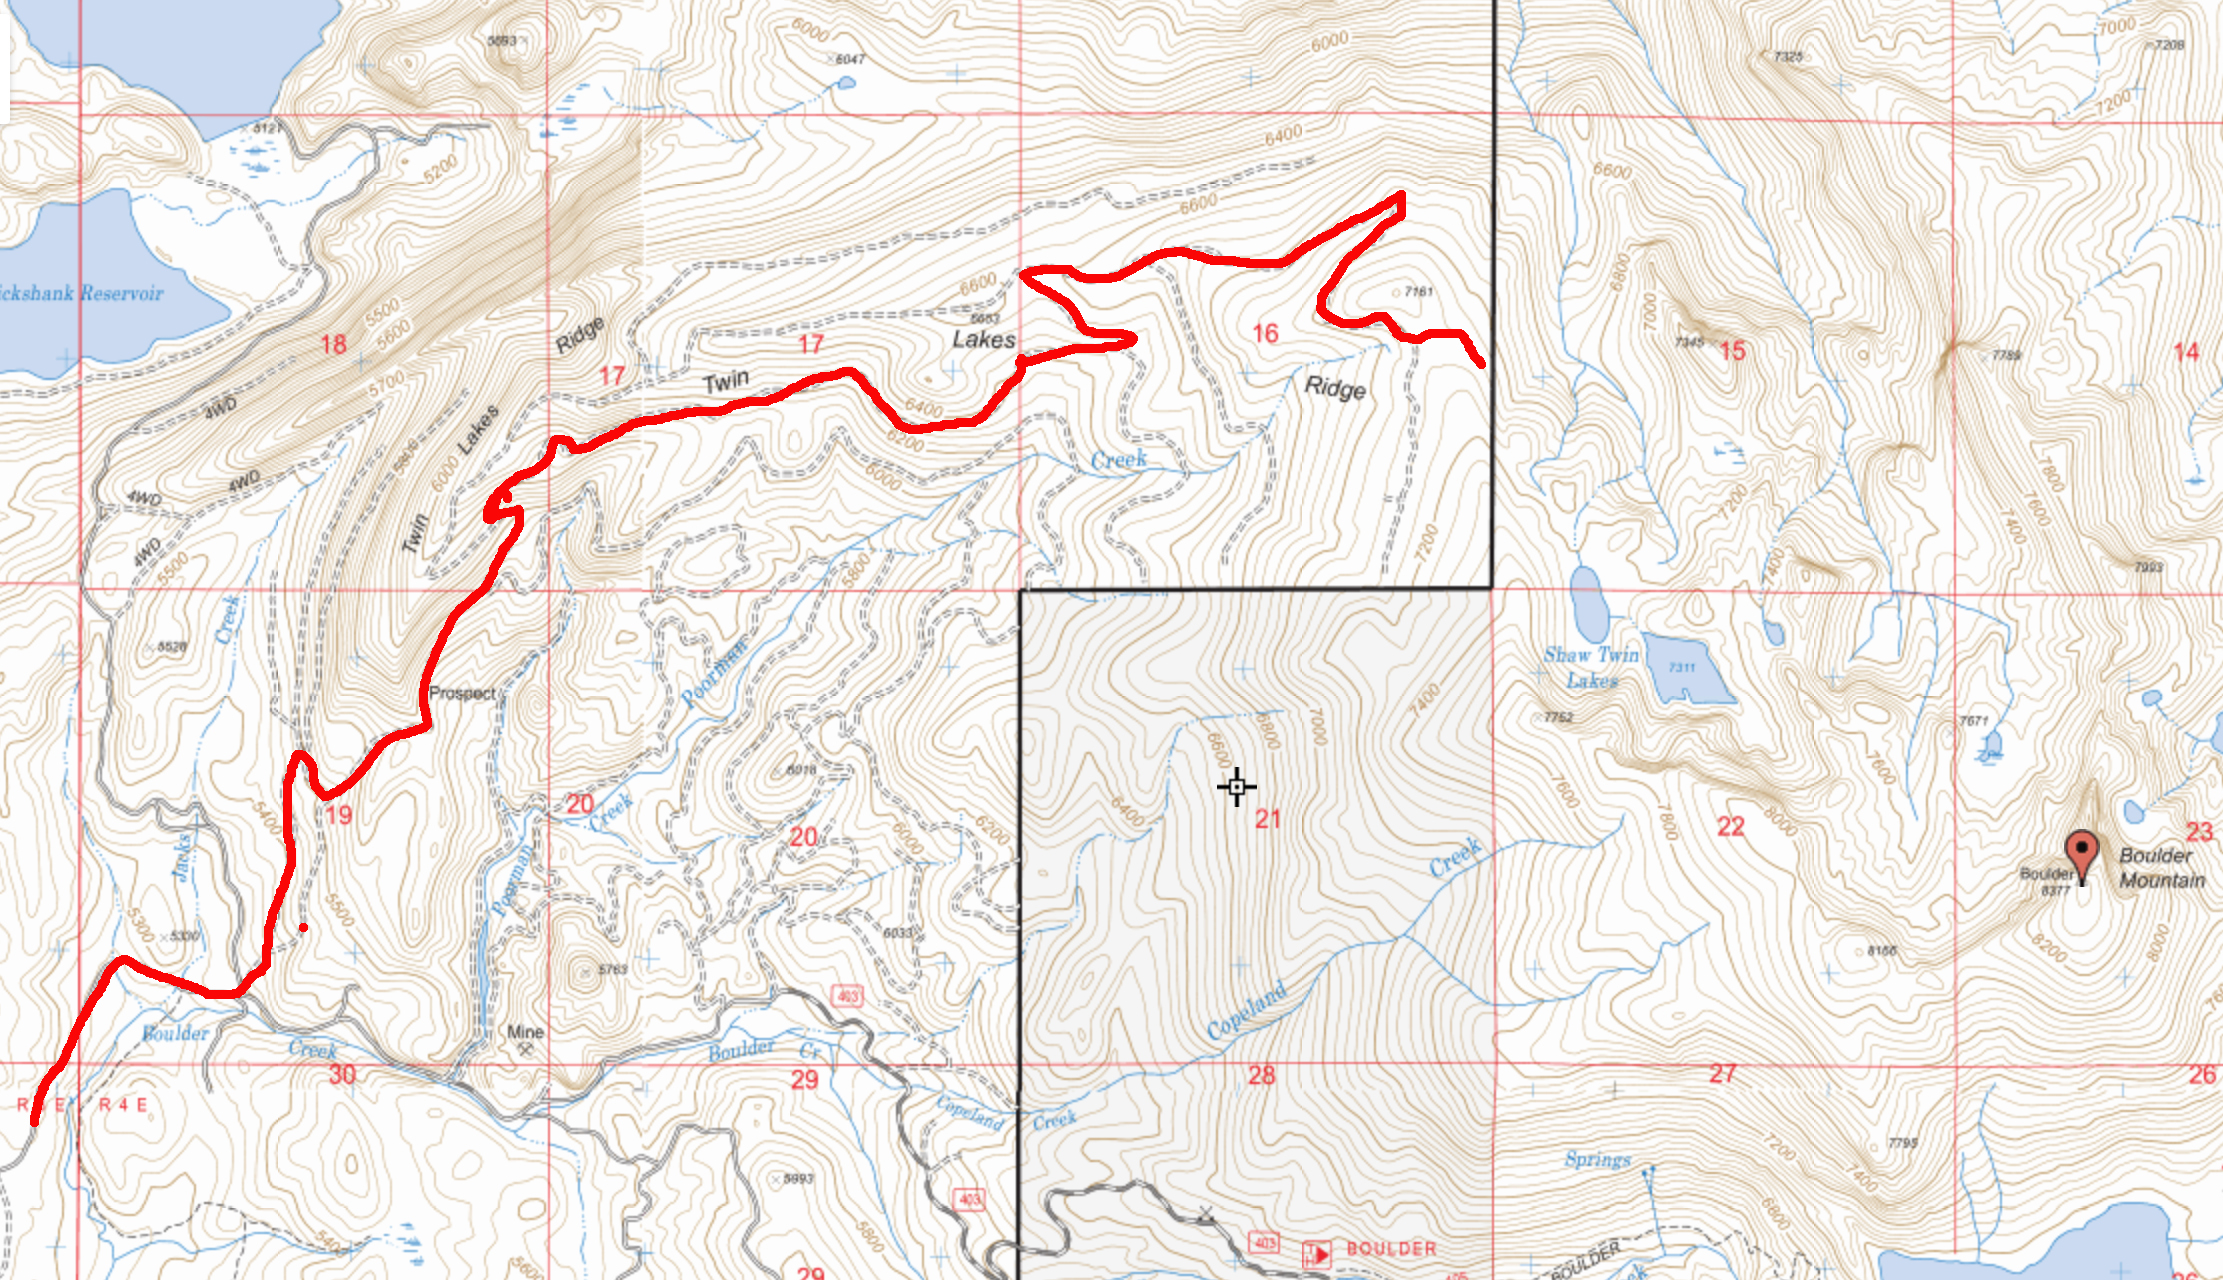 Our access route. This map shows the network of roads leading toward the northwest ridge.